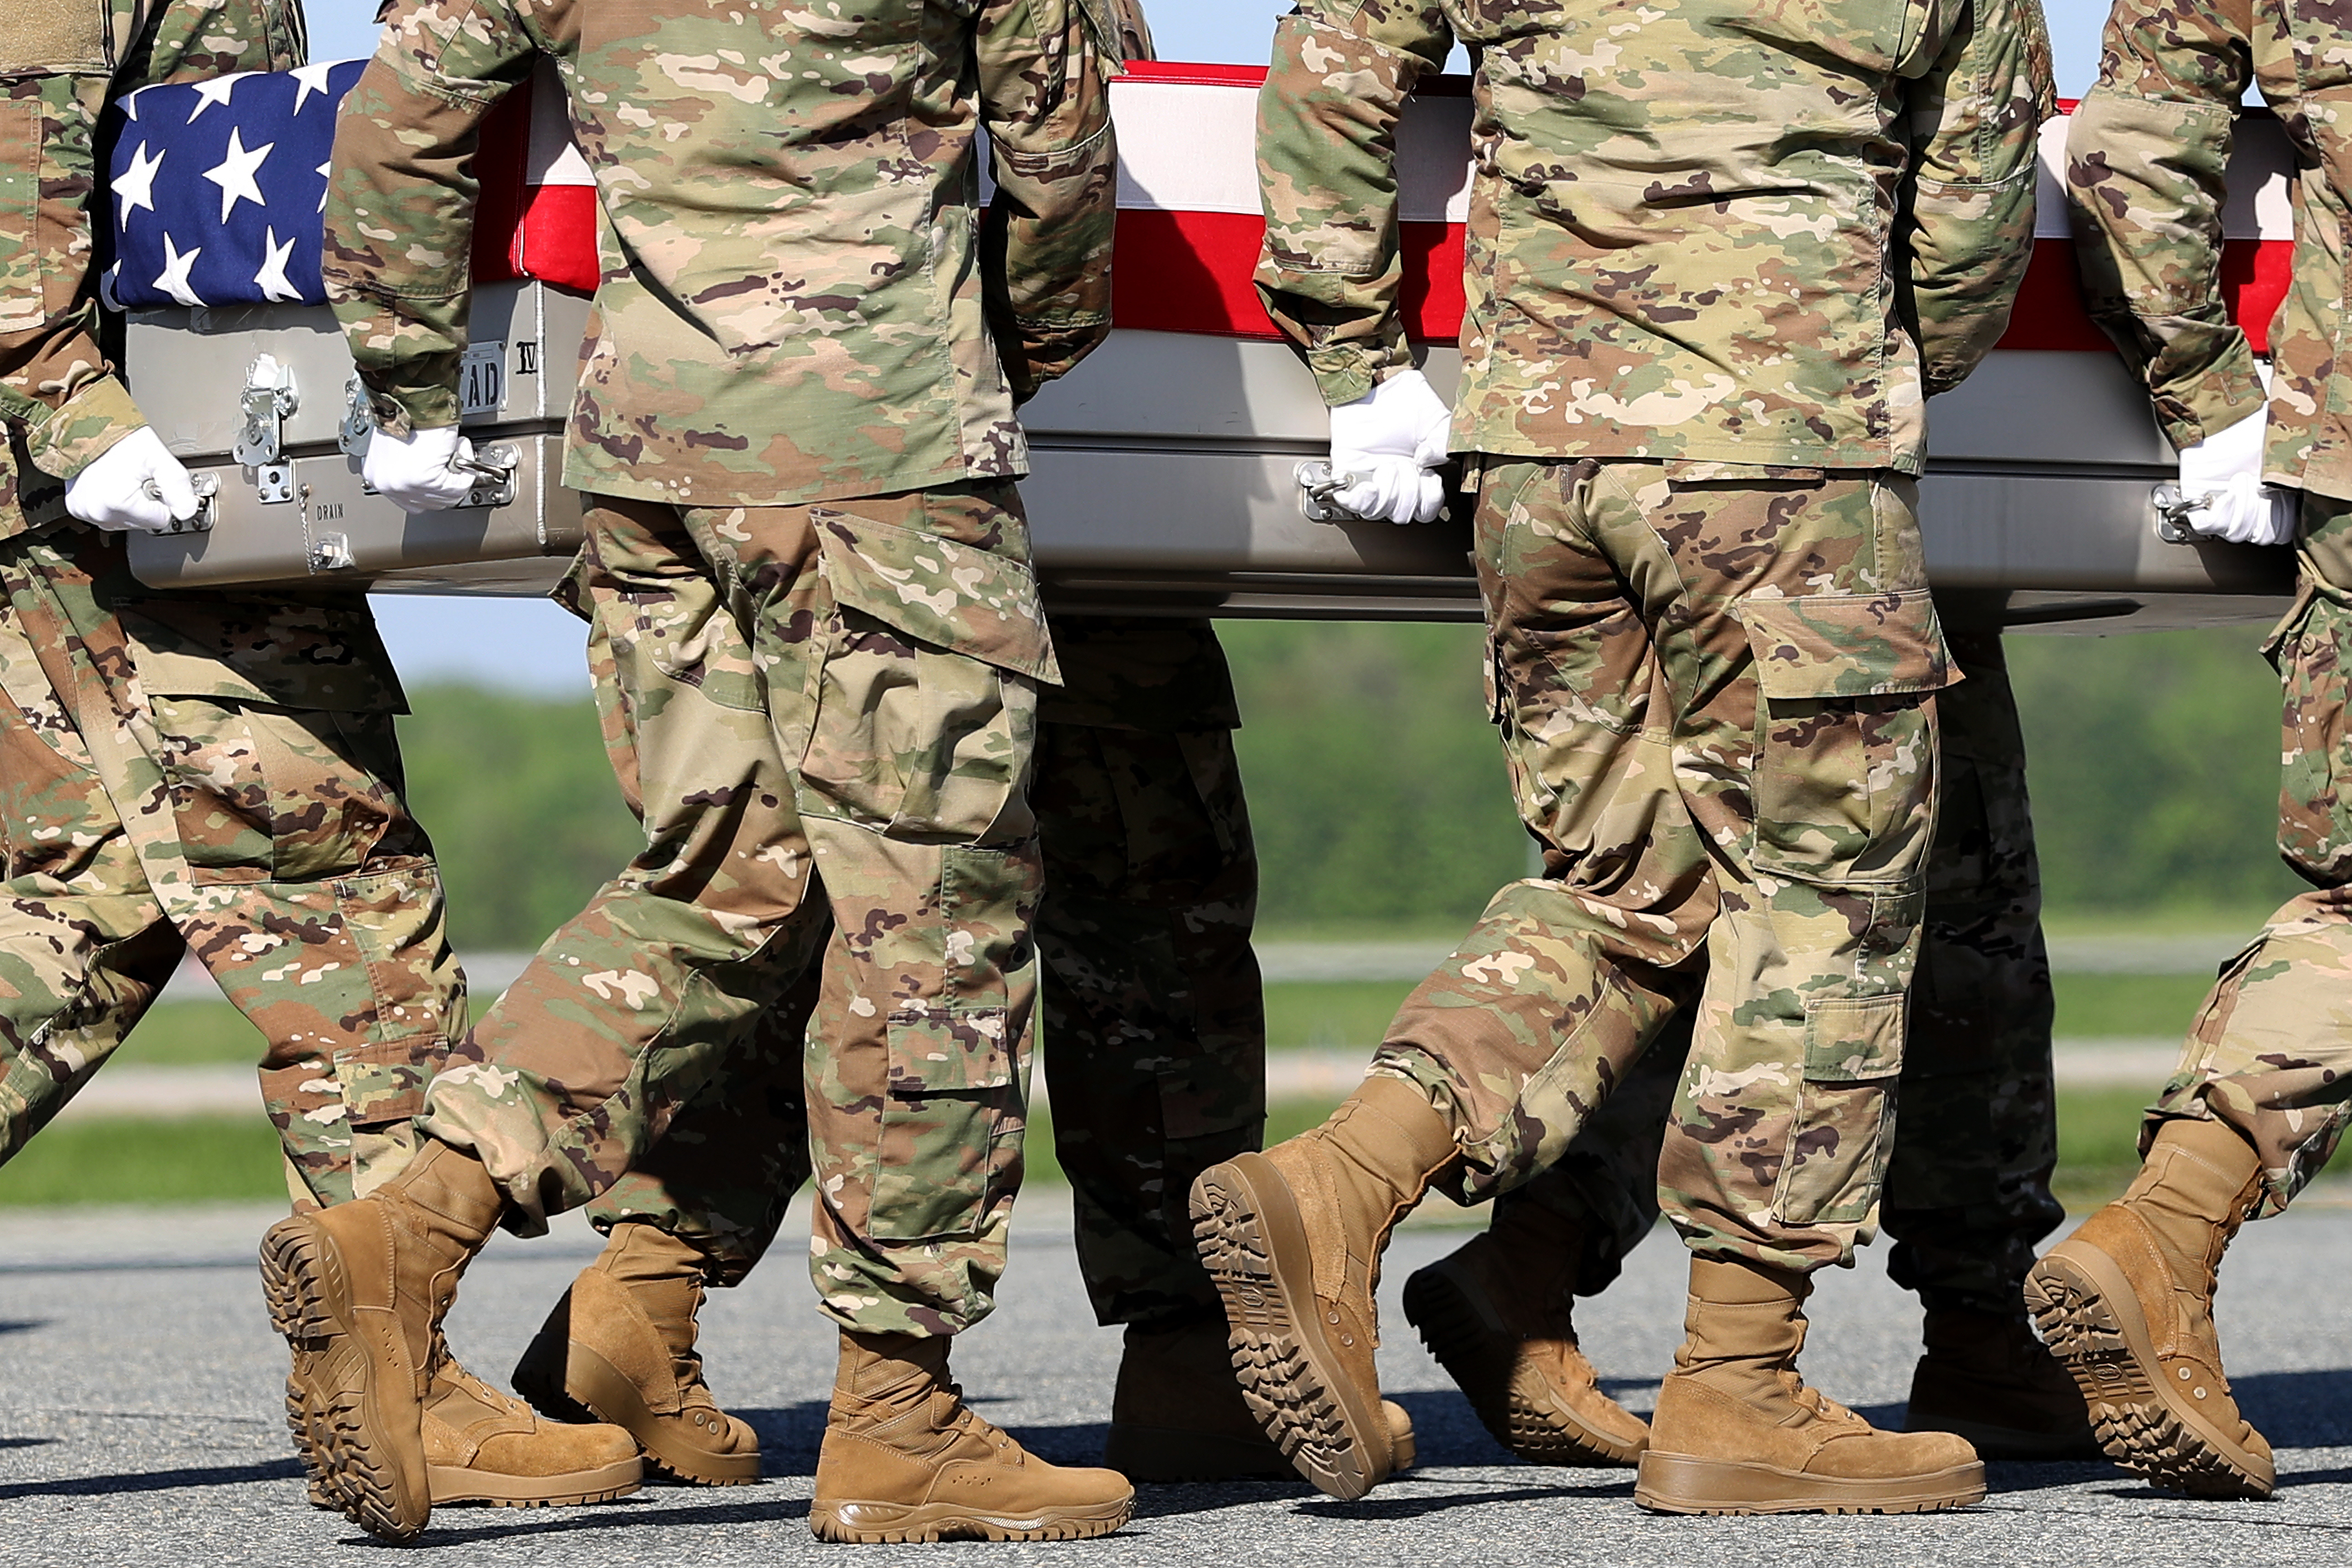 U.S. Army soldiers carry the flag-draped transfer case containing the remains of U.S. Army Ranger Sgt. Cameron H. Thomas at Dover Air Force Base. (Getty Images)